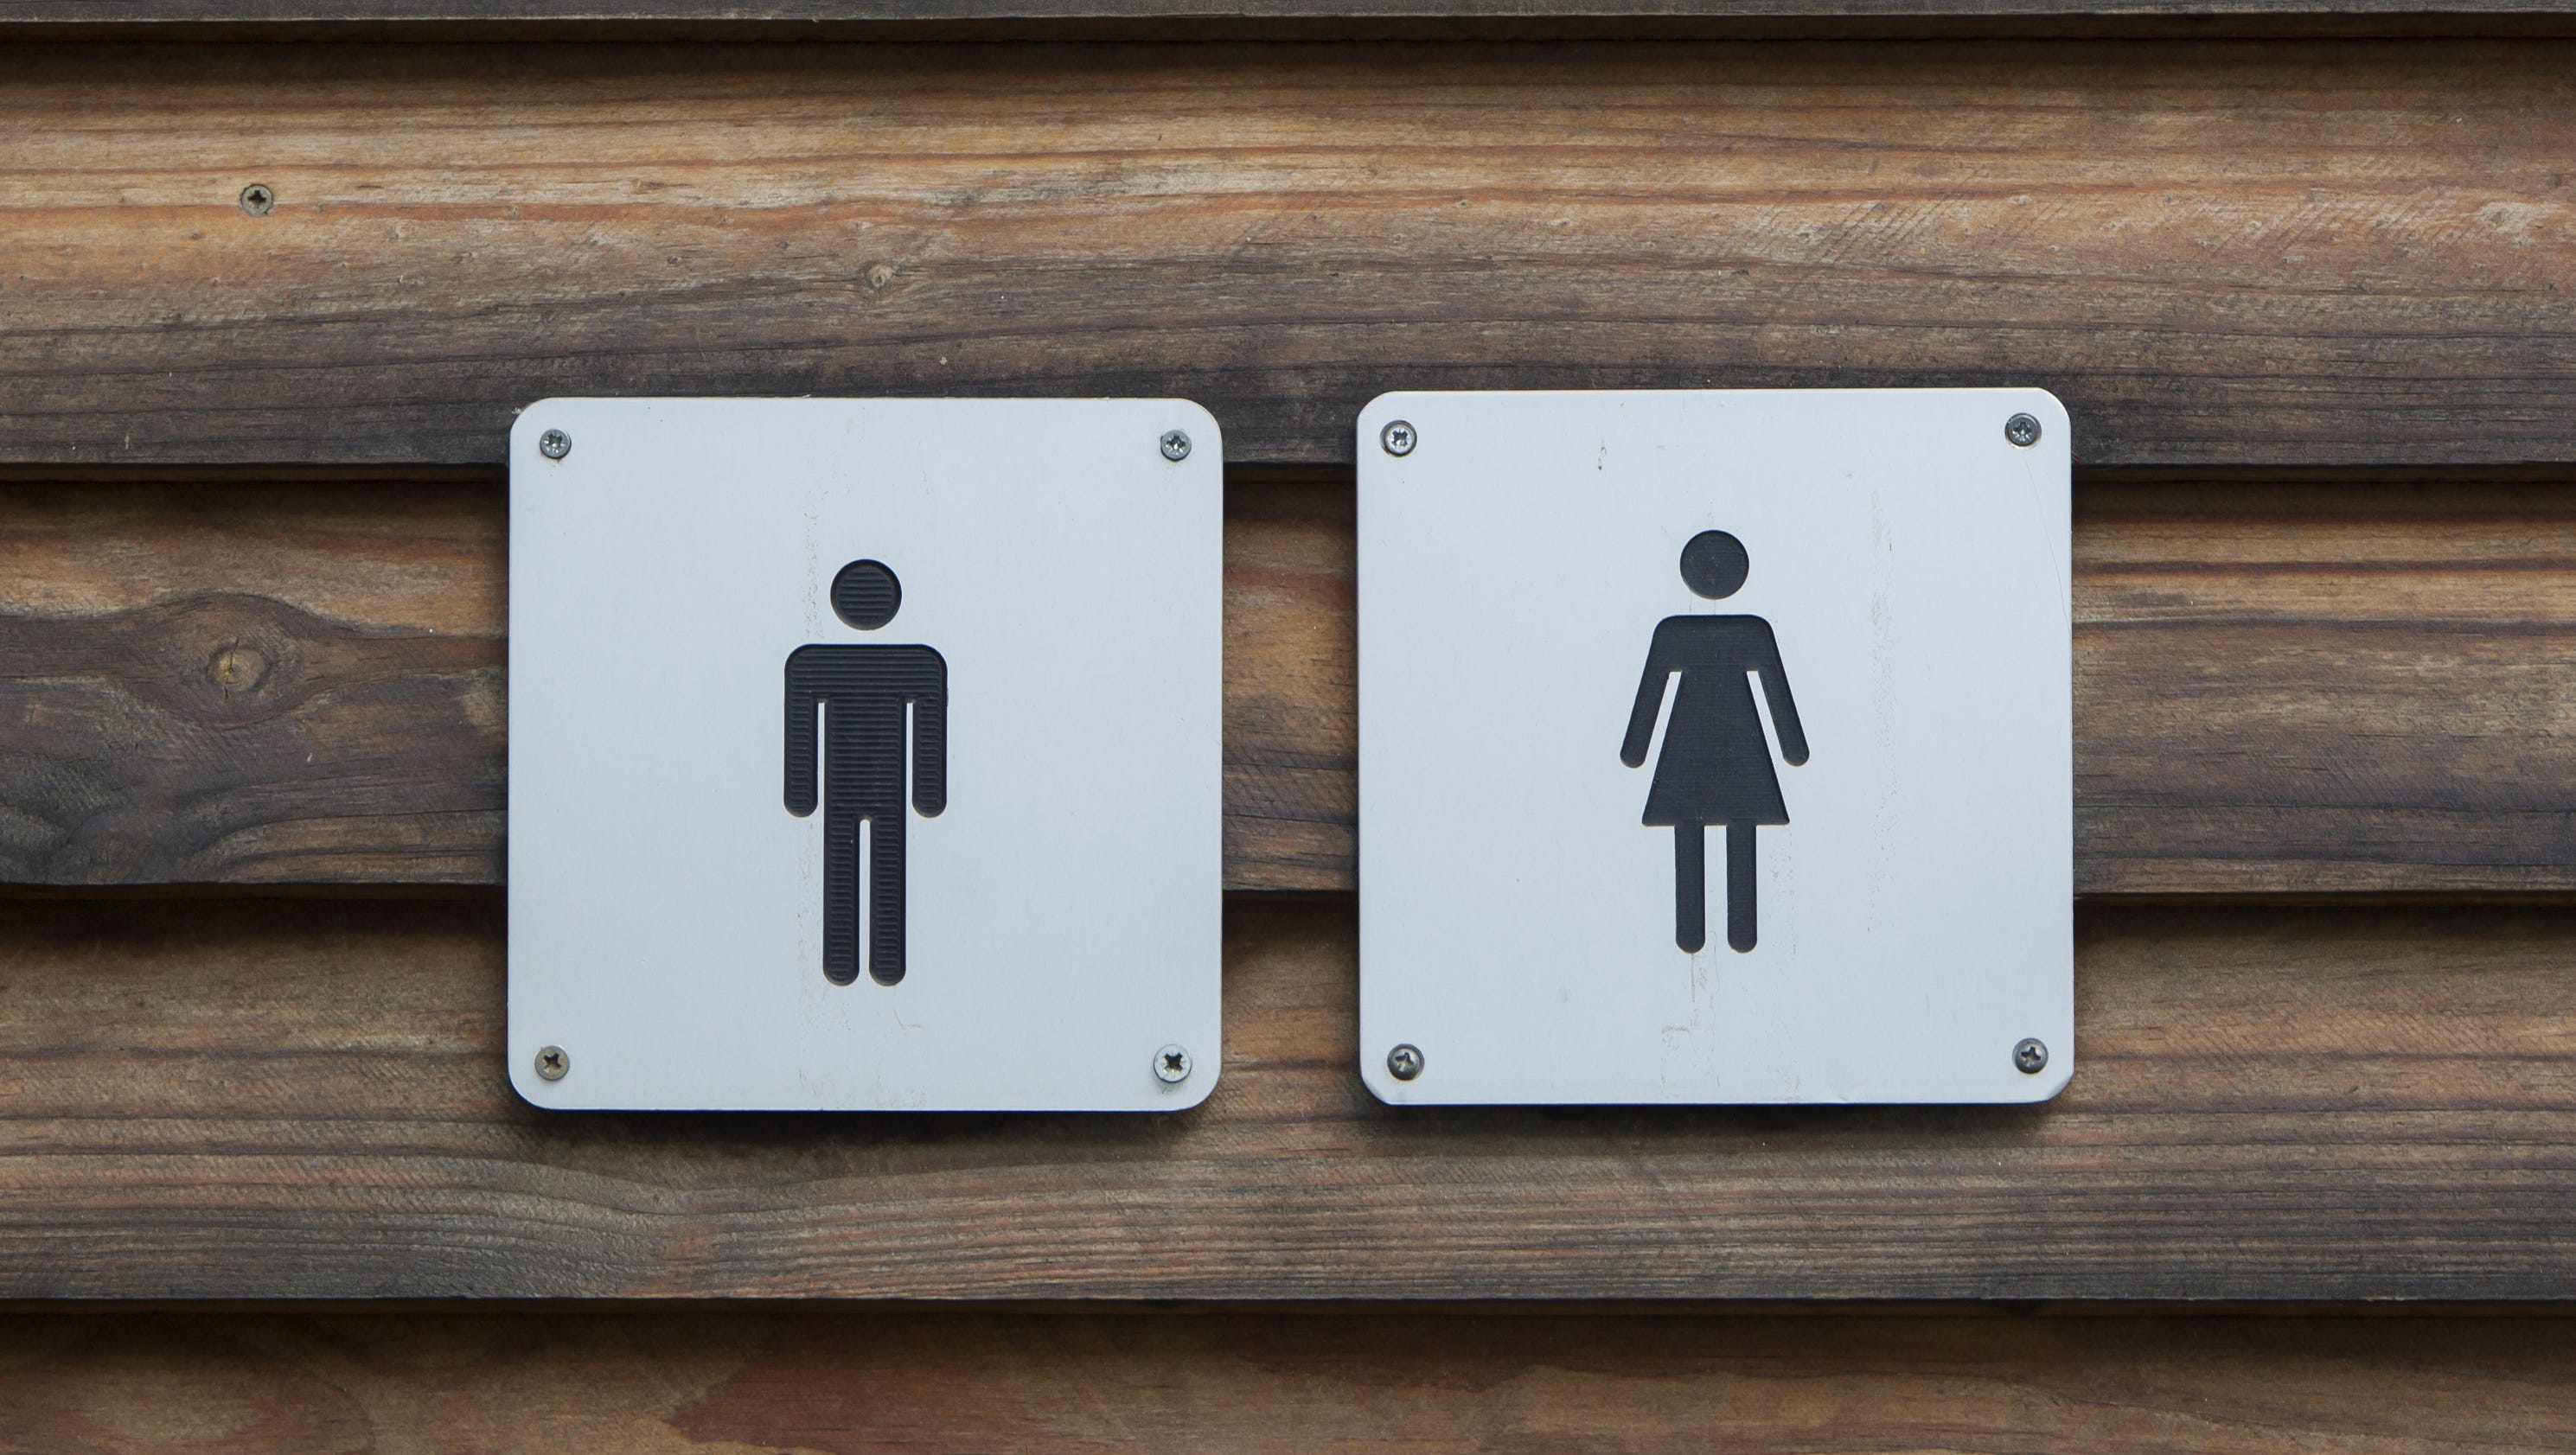 The imaginary predator in america 39 s transgender bathroom war - Transgender discrimination bathroom ...